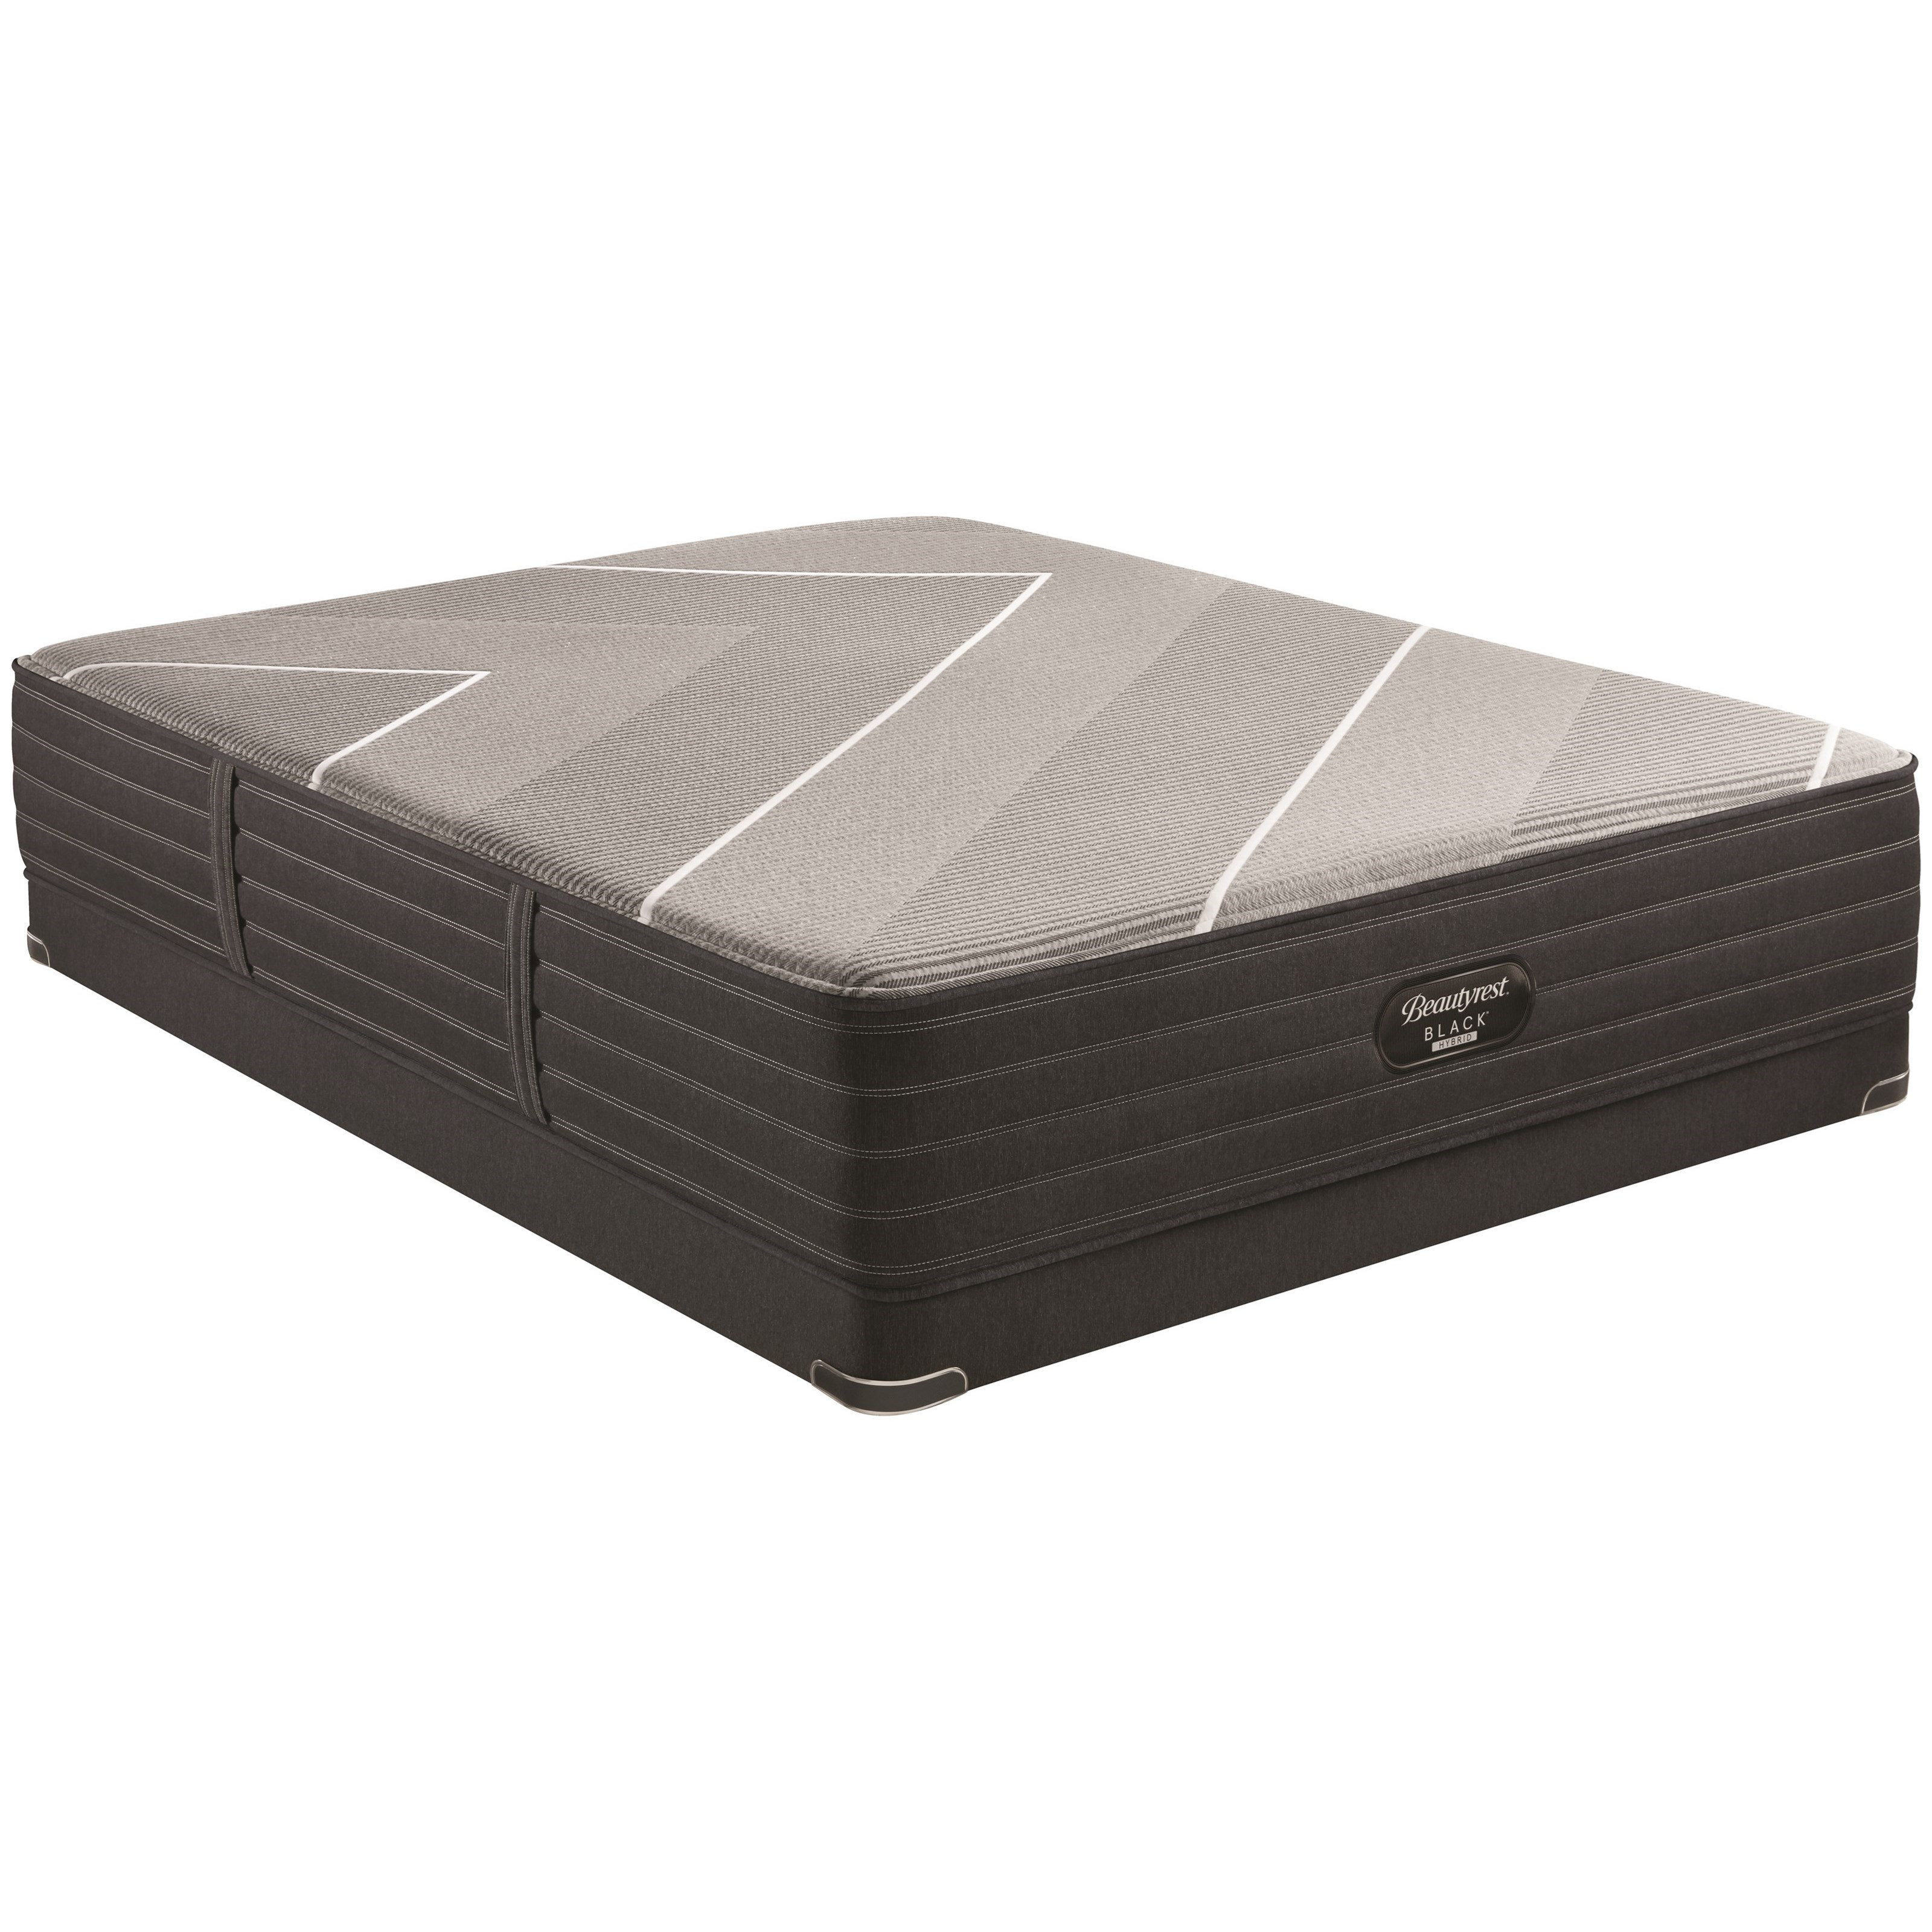 "X-Class Hybrid Plush Full 13 1/2"" Plush Hybrid LP Set by Beautyrest at Walker's Mattress"